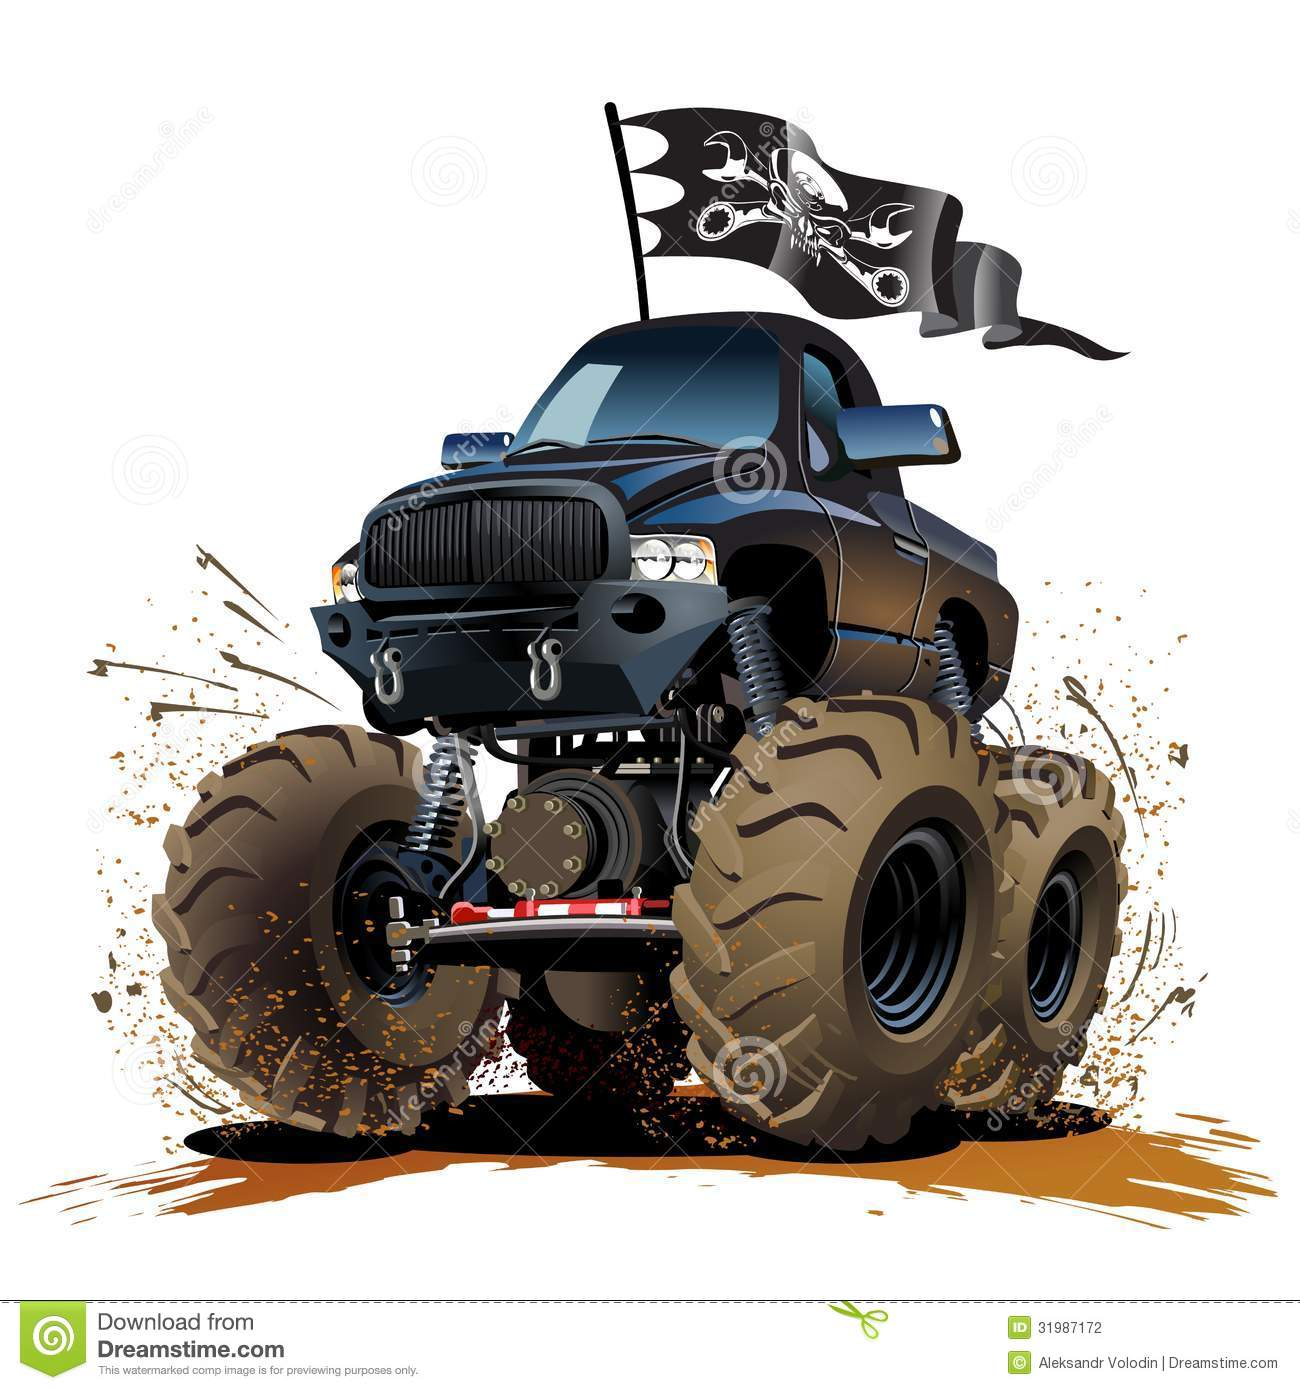 rc 4x4 mud trucks with Stock Photography Cartoon Monster Truck Vector Buggy Available Eps Vector Format Separated Groups Layers Easy Edit Image31987172 on 26 Pics Of Trucks Stuck In The Mud moreover 84 Chevy Short Bed C20 K20 039 Mericah Edition Custom Lifted Mud Bog Truck 1012039 additionally 409194316114916457 further Trad6804 additionally Watch.